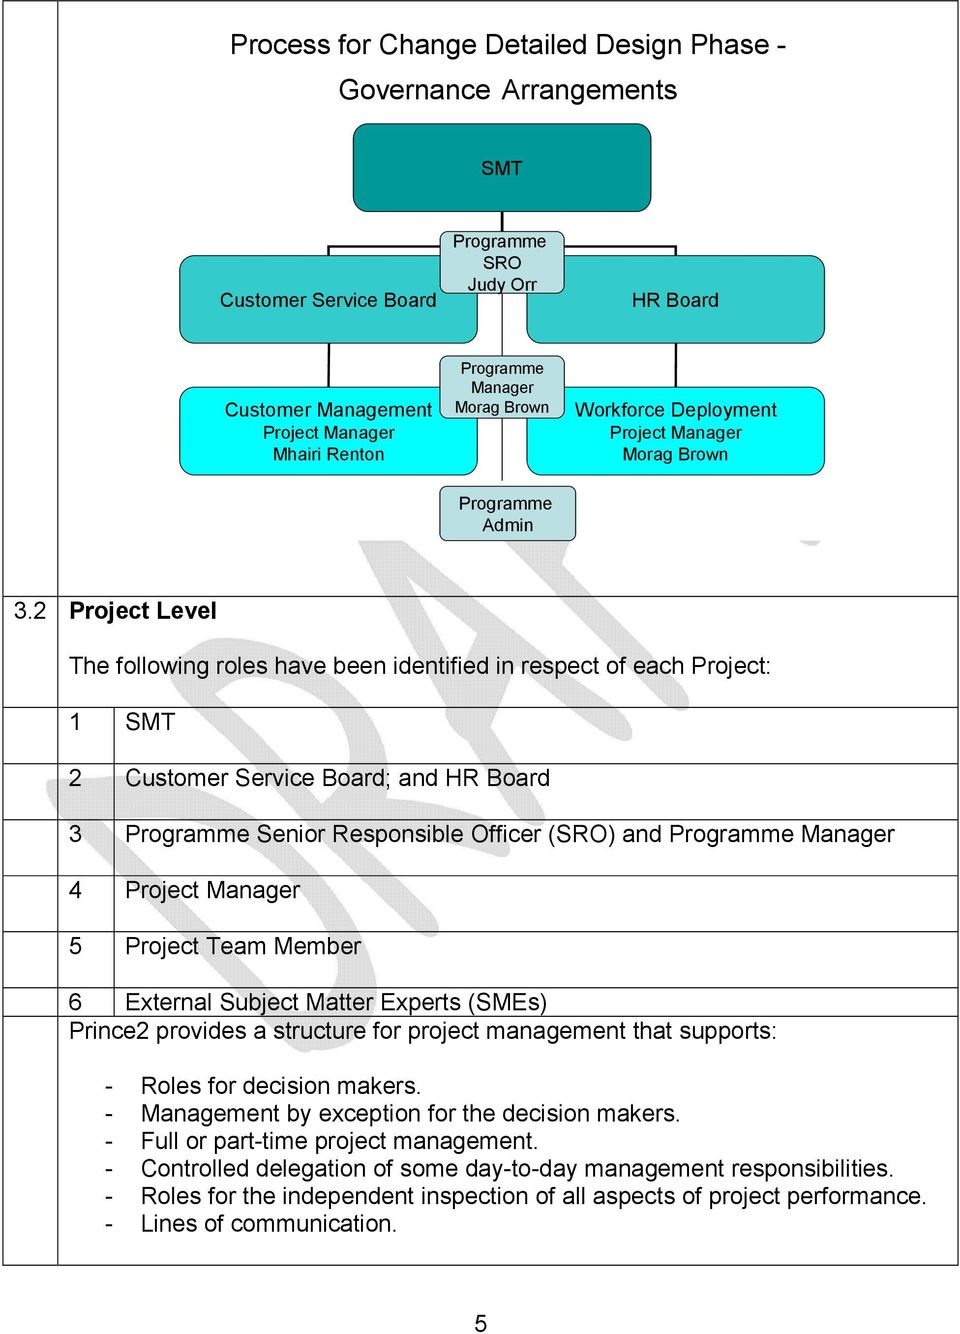 2 Project Level The following roles have been identified in respect of each Project: 1 SMT 2 Customer Service Board; and HR Board 3 Programme Senior Responsible Officer (SRO) and Programme Manager 4